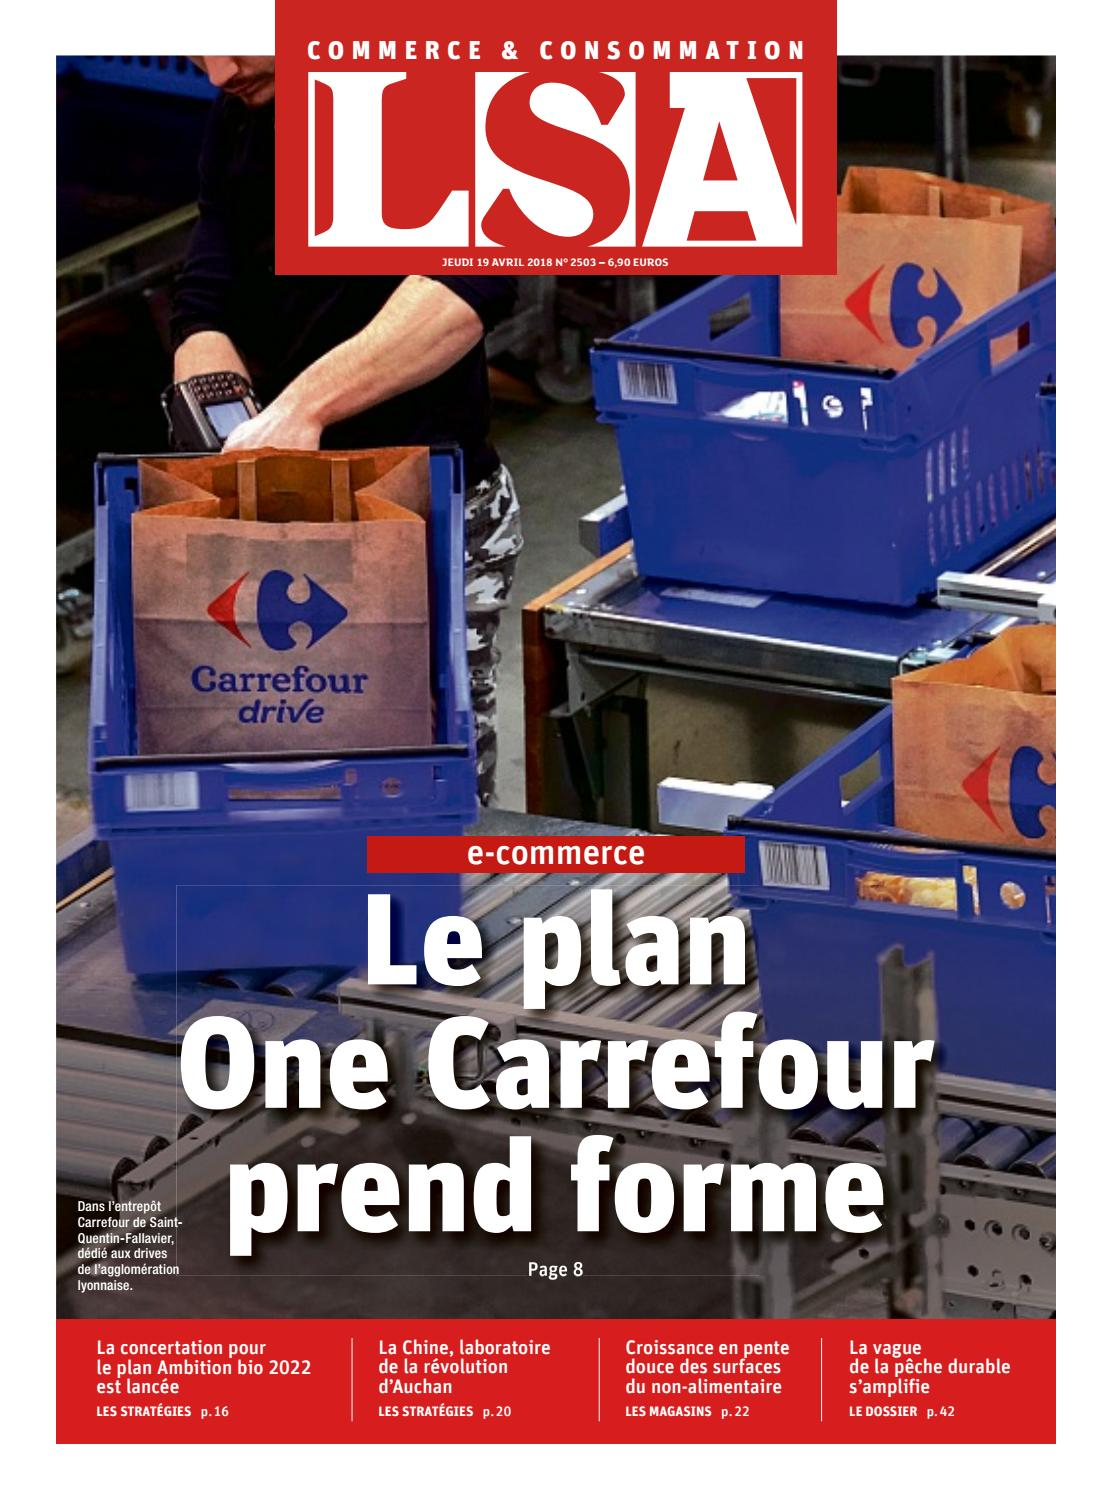 Lsa Dossier Non Alimentaire By Infopro Digital Issuu